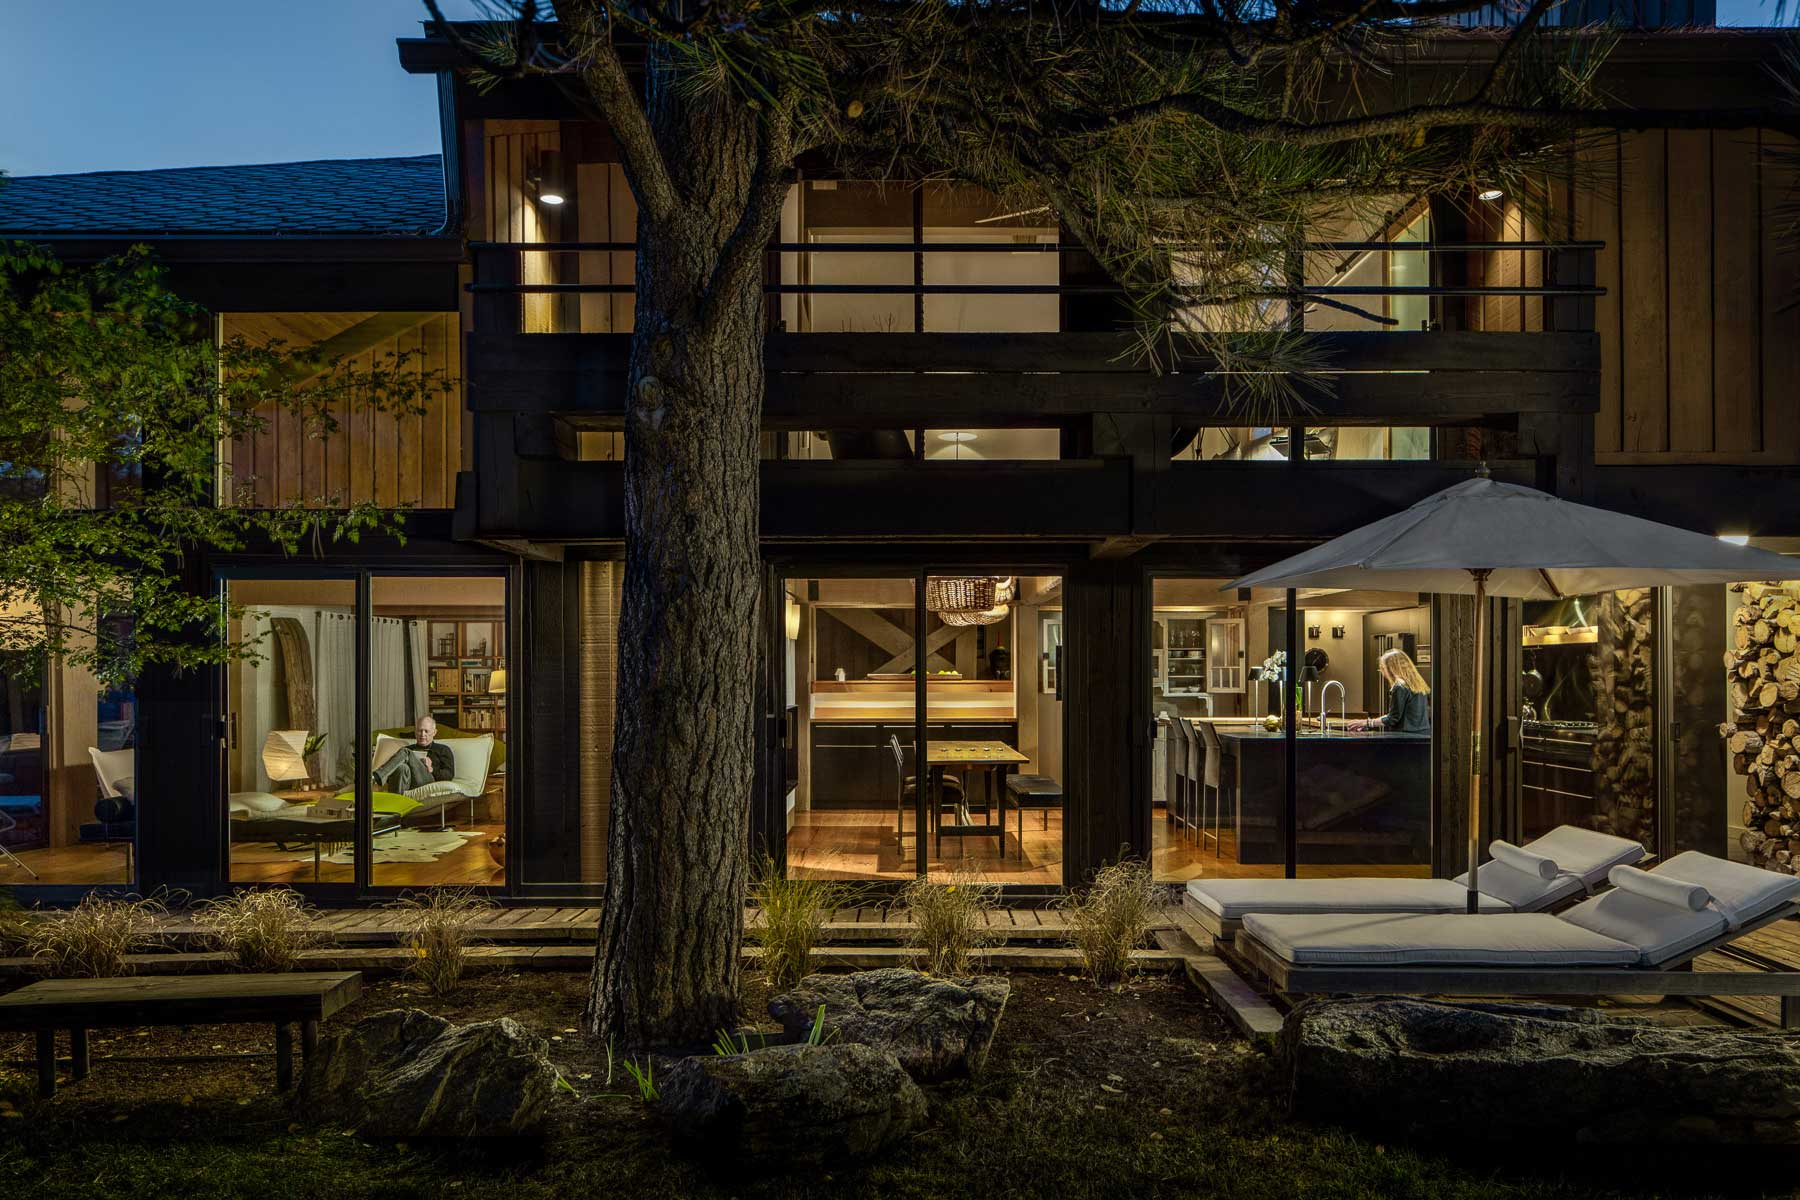 Included Below Are Additional Images And Comments By Jeff Sheppard (Roth  Sheppard Architects) About His Relationship To His Home. You Can Read The  Original ...